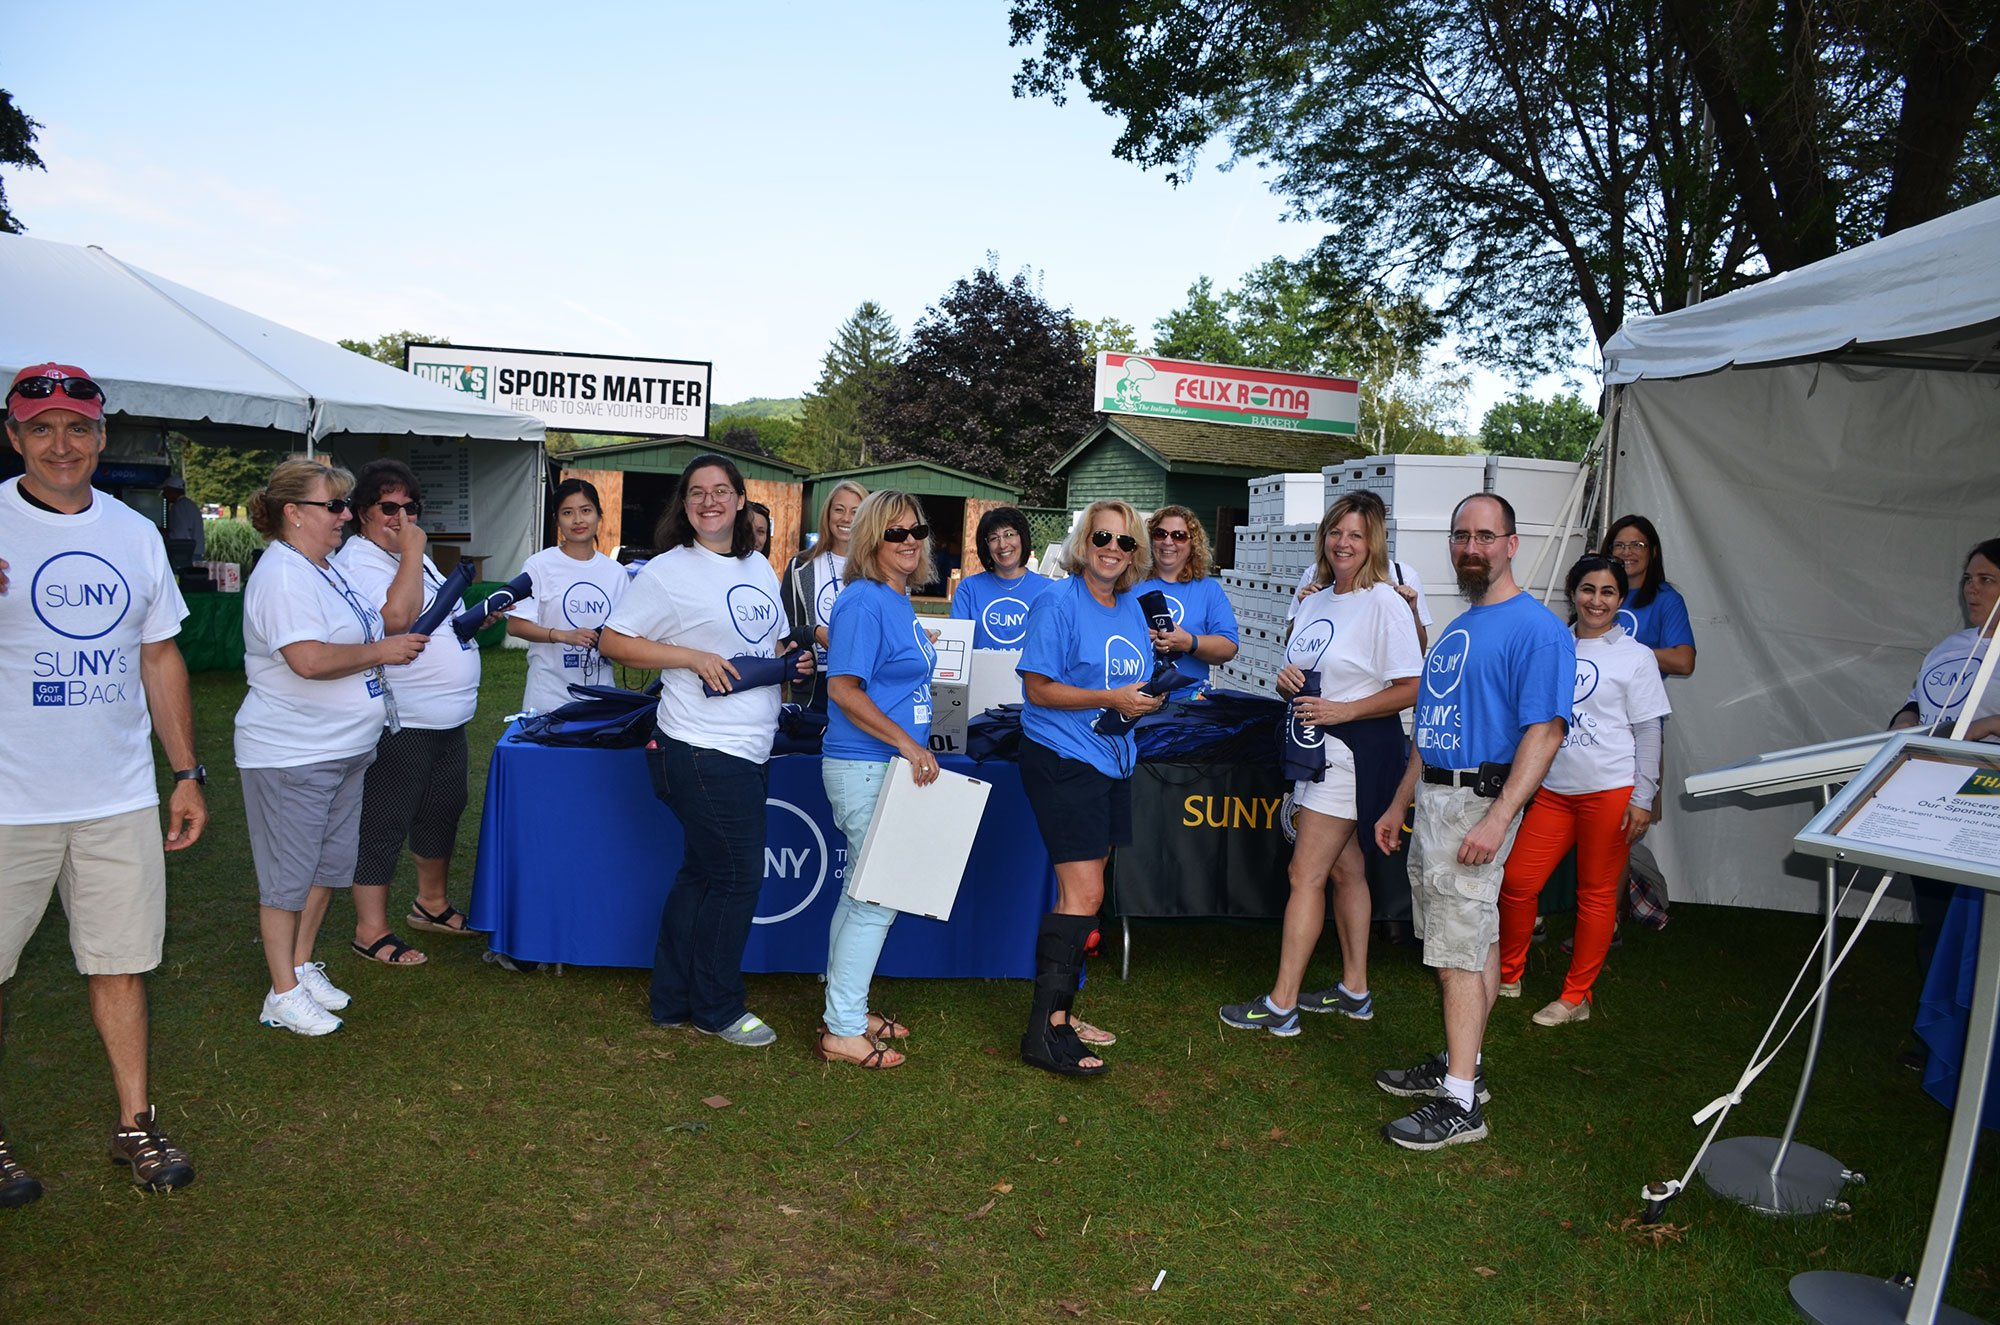 Thank you to all the volunteers making a difference @dicksopengolf. Victims of assault are not alone - we stand with them. #SUNYsGotYourBack https://t.co/R2MLtiwyEh